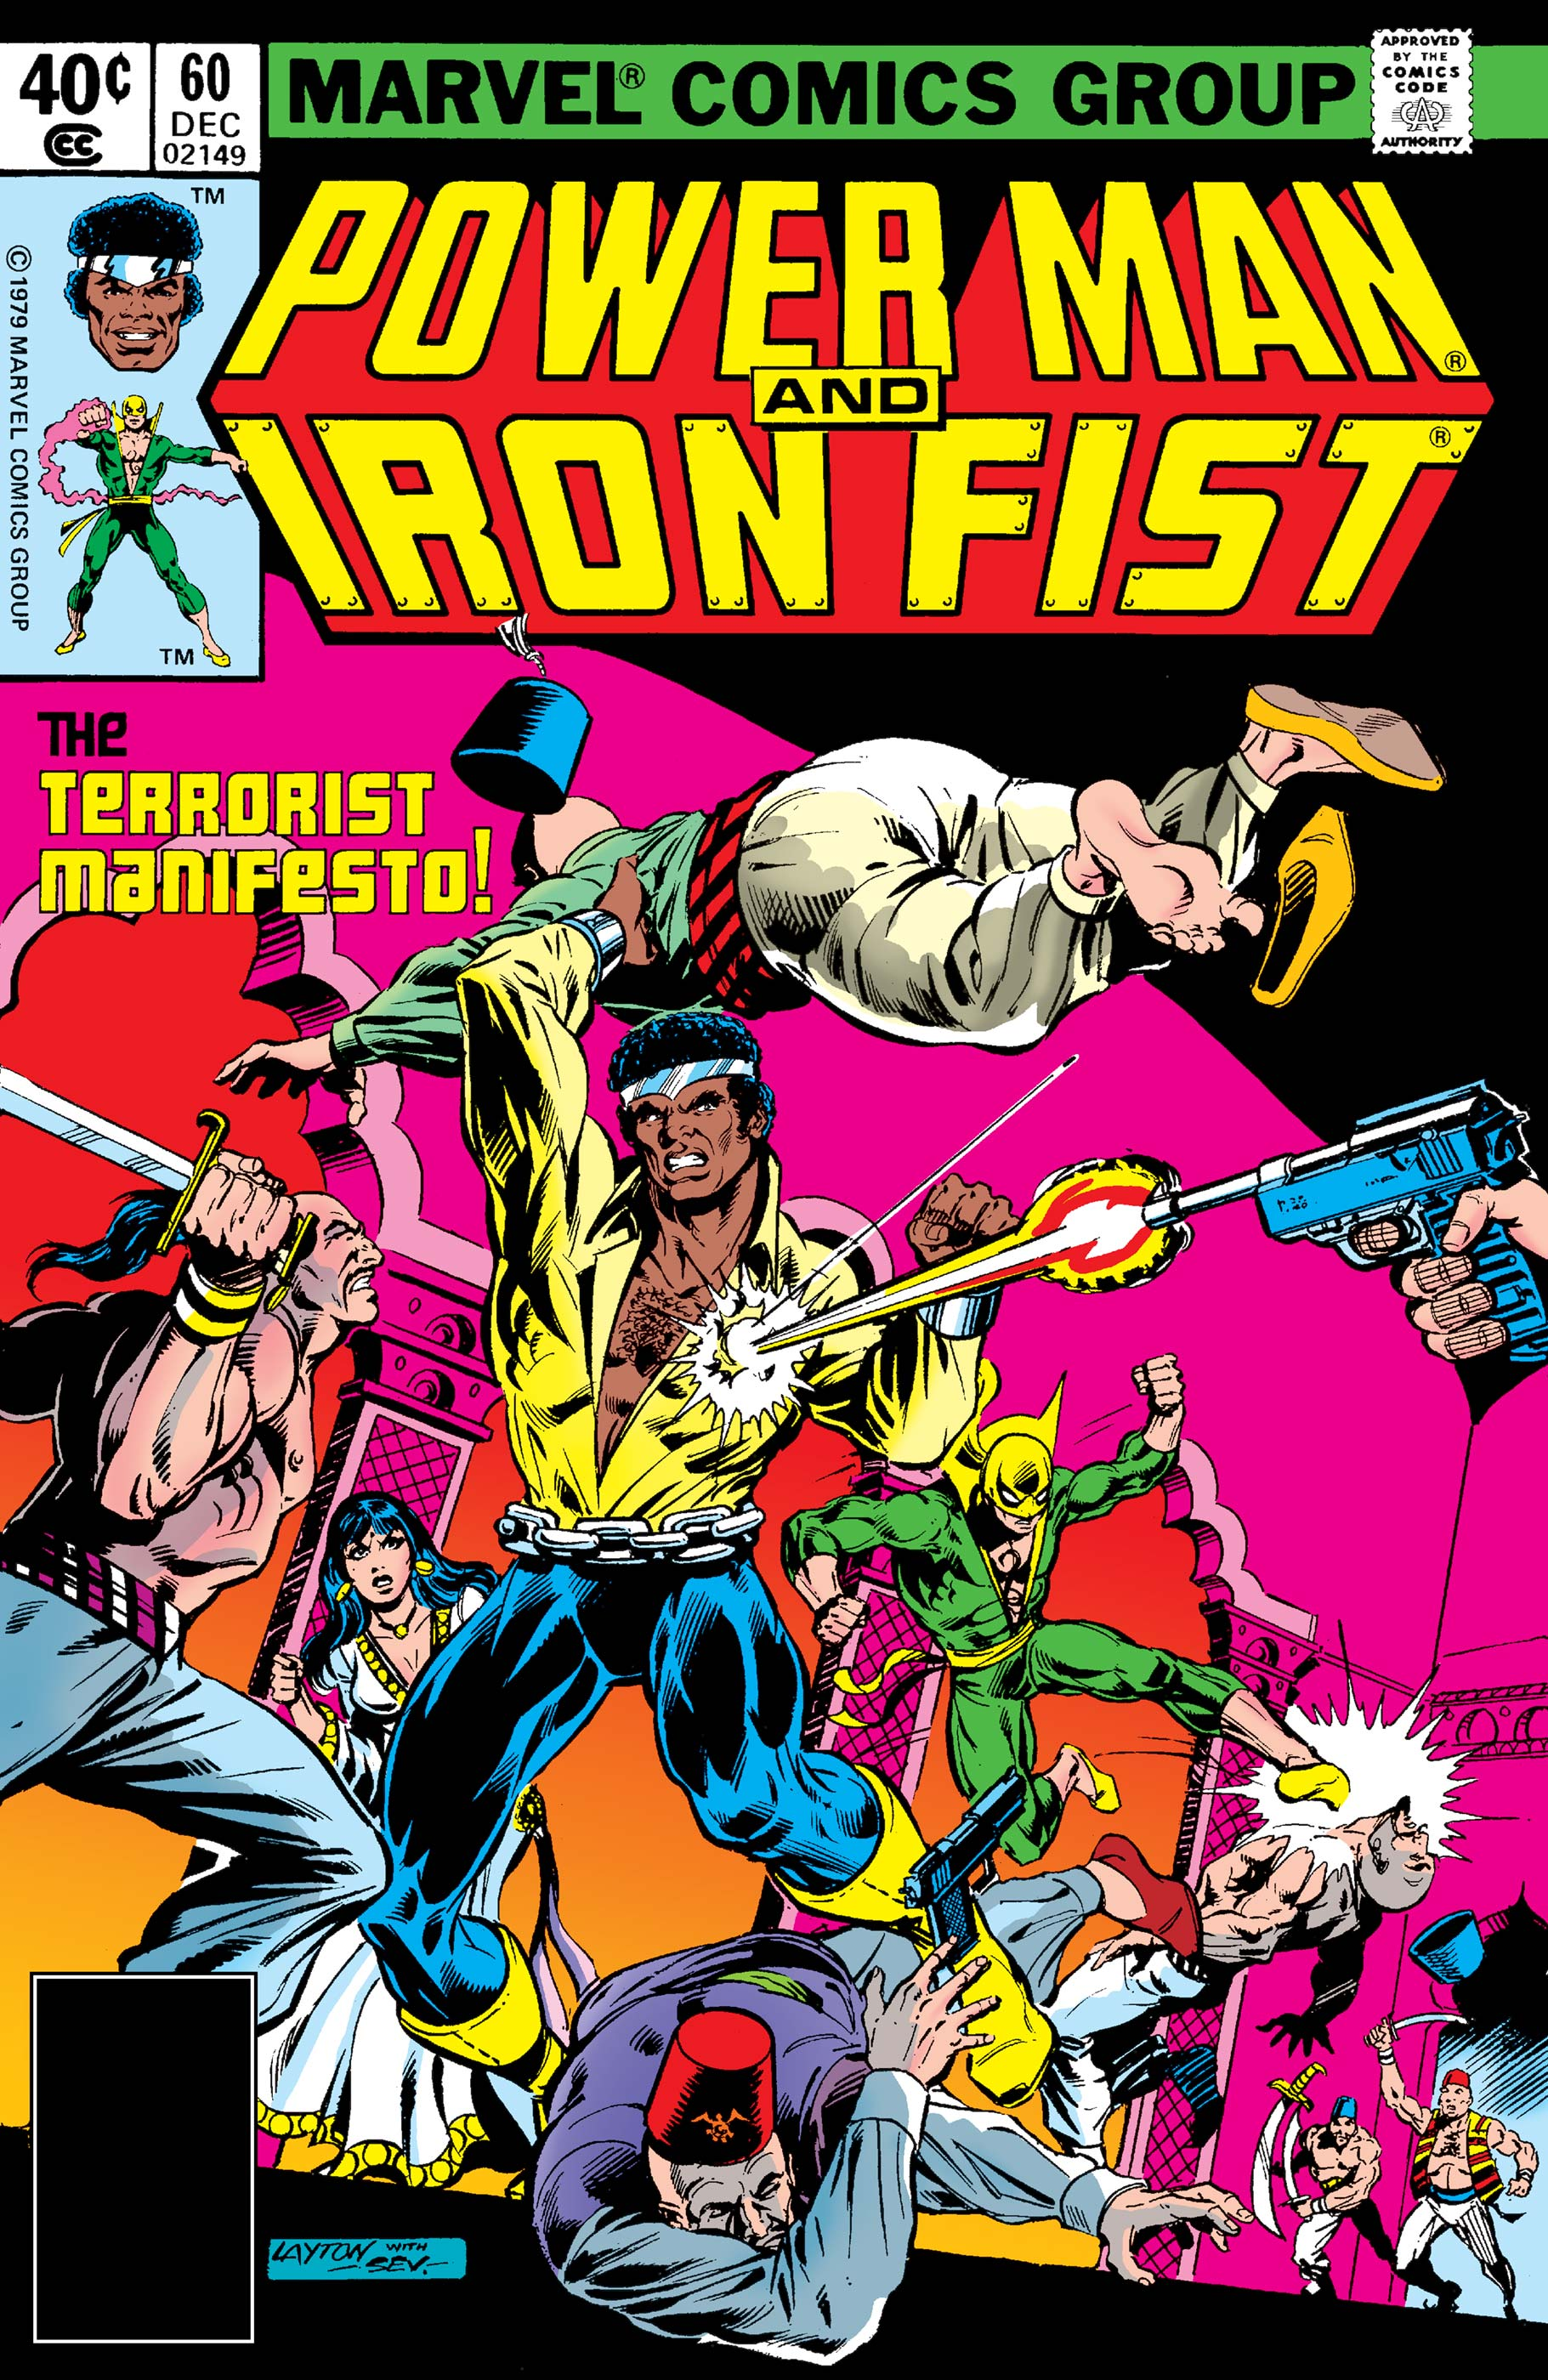 Power Man and Iron Fist (1978) #60